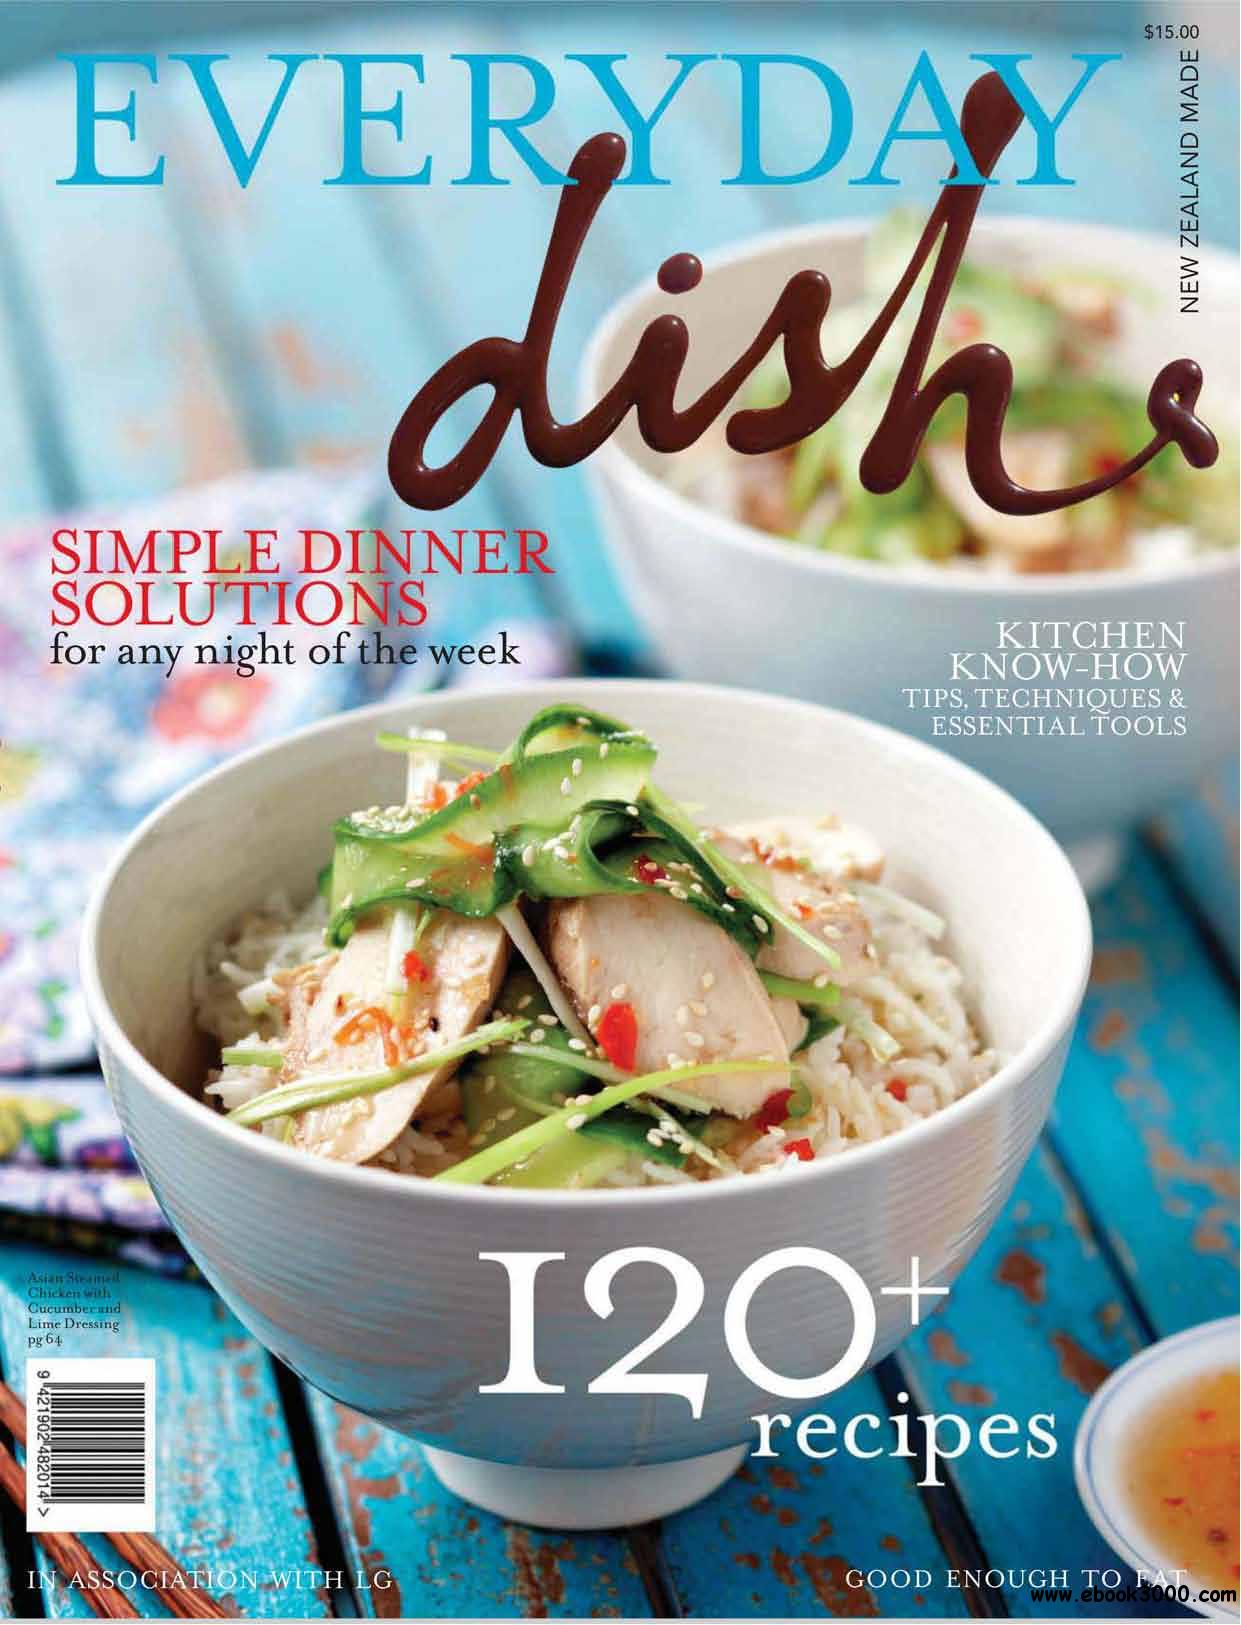 Everyday Dish free download